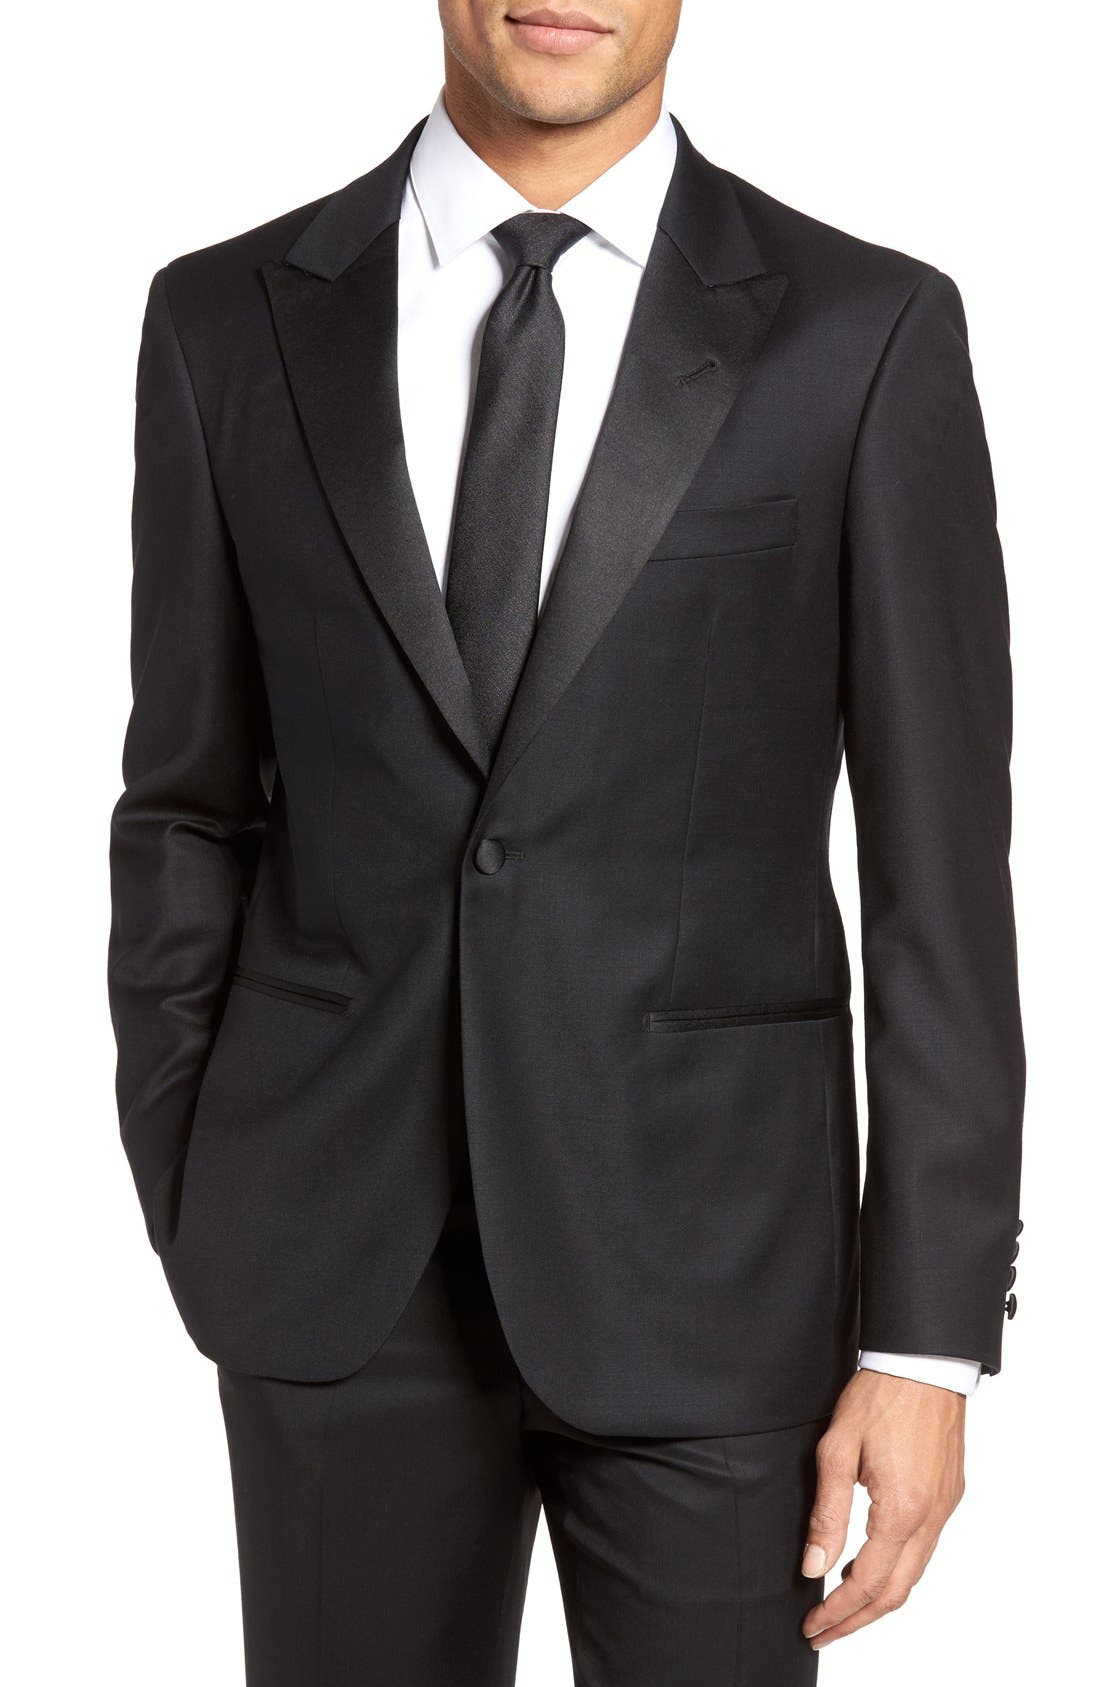 Alternate Image 1 Selected - Strong Suit Aston Trim Fit Wool Dinner Jacket